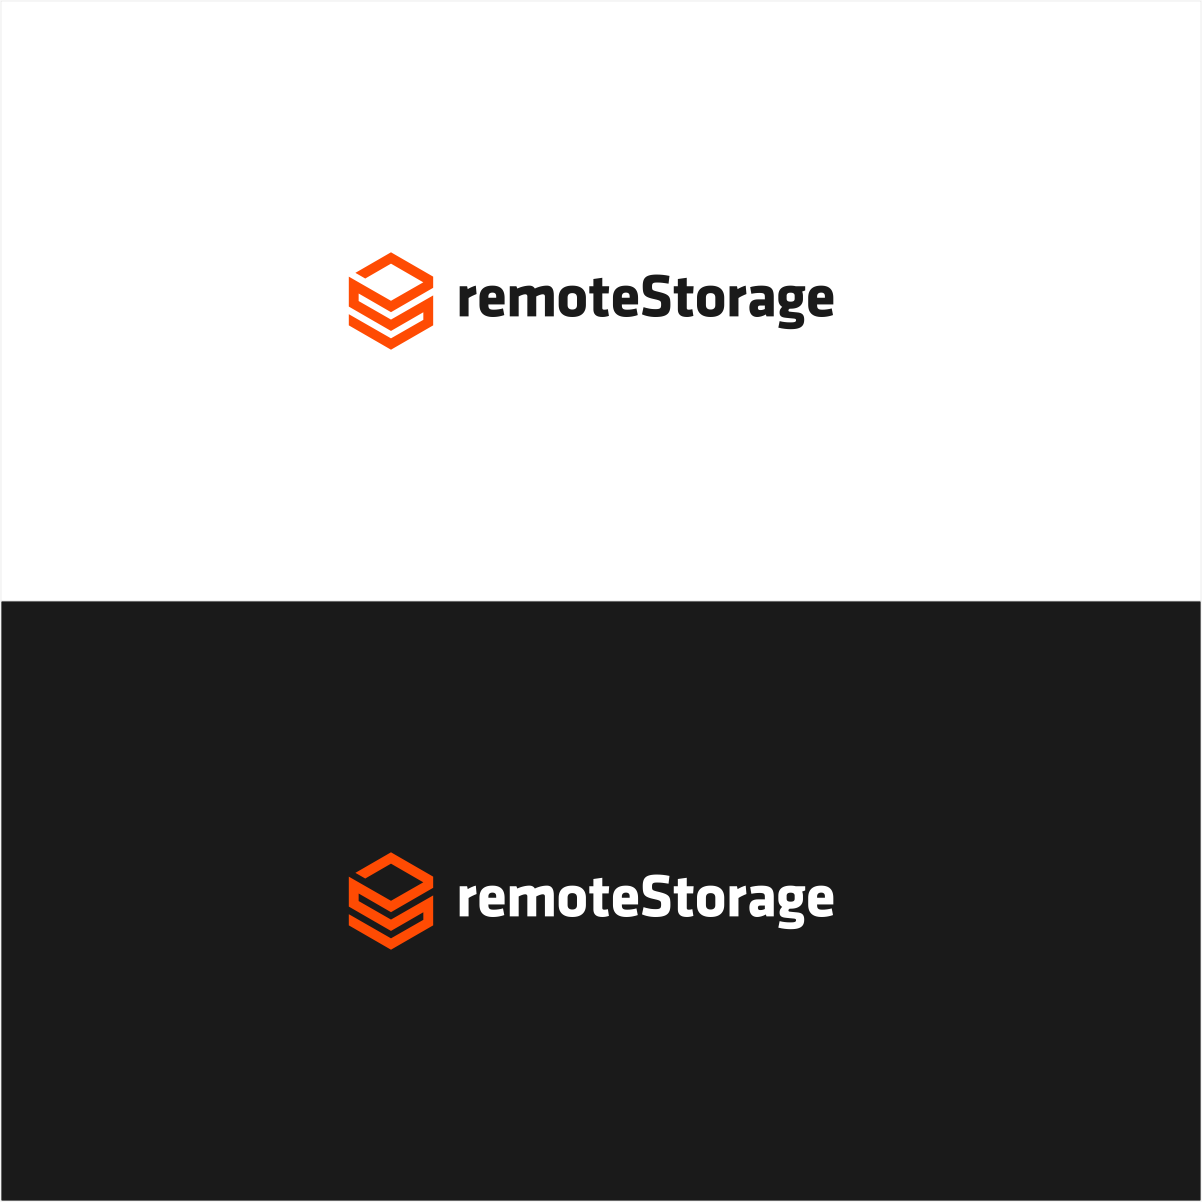 remotestorage_type2